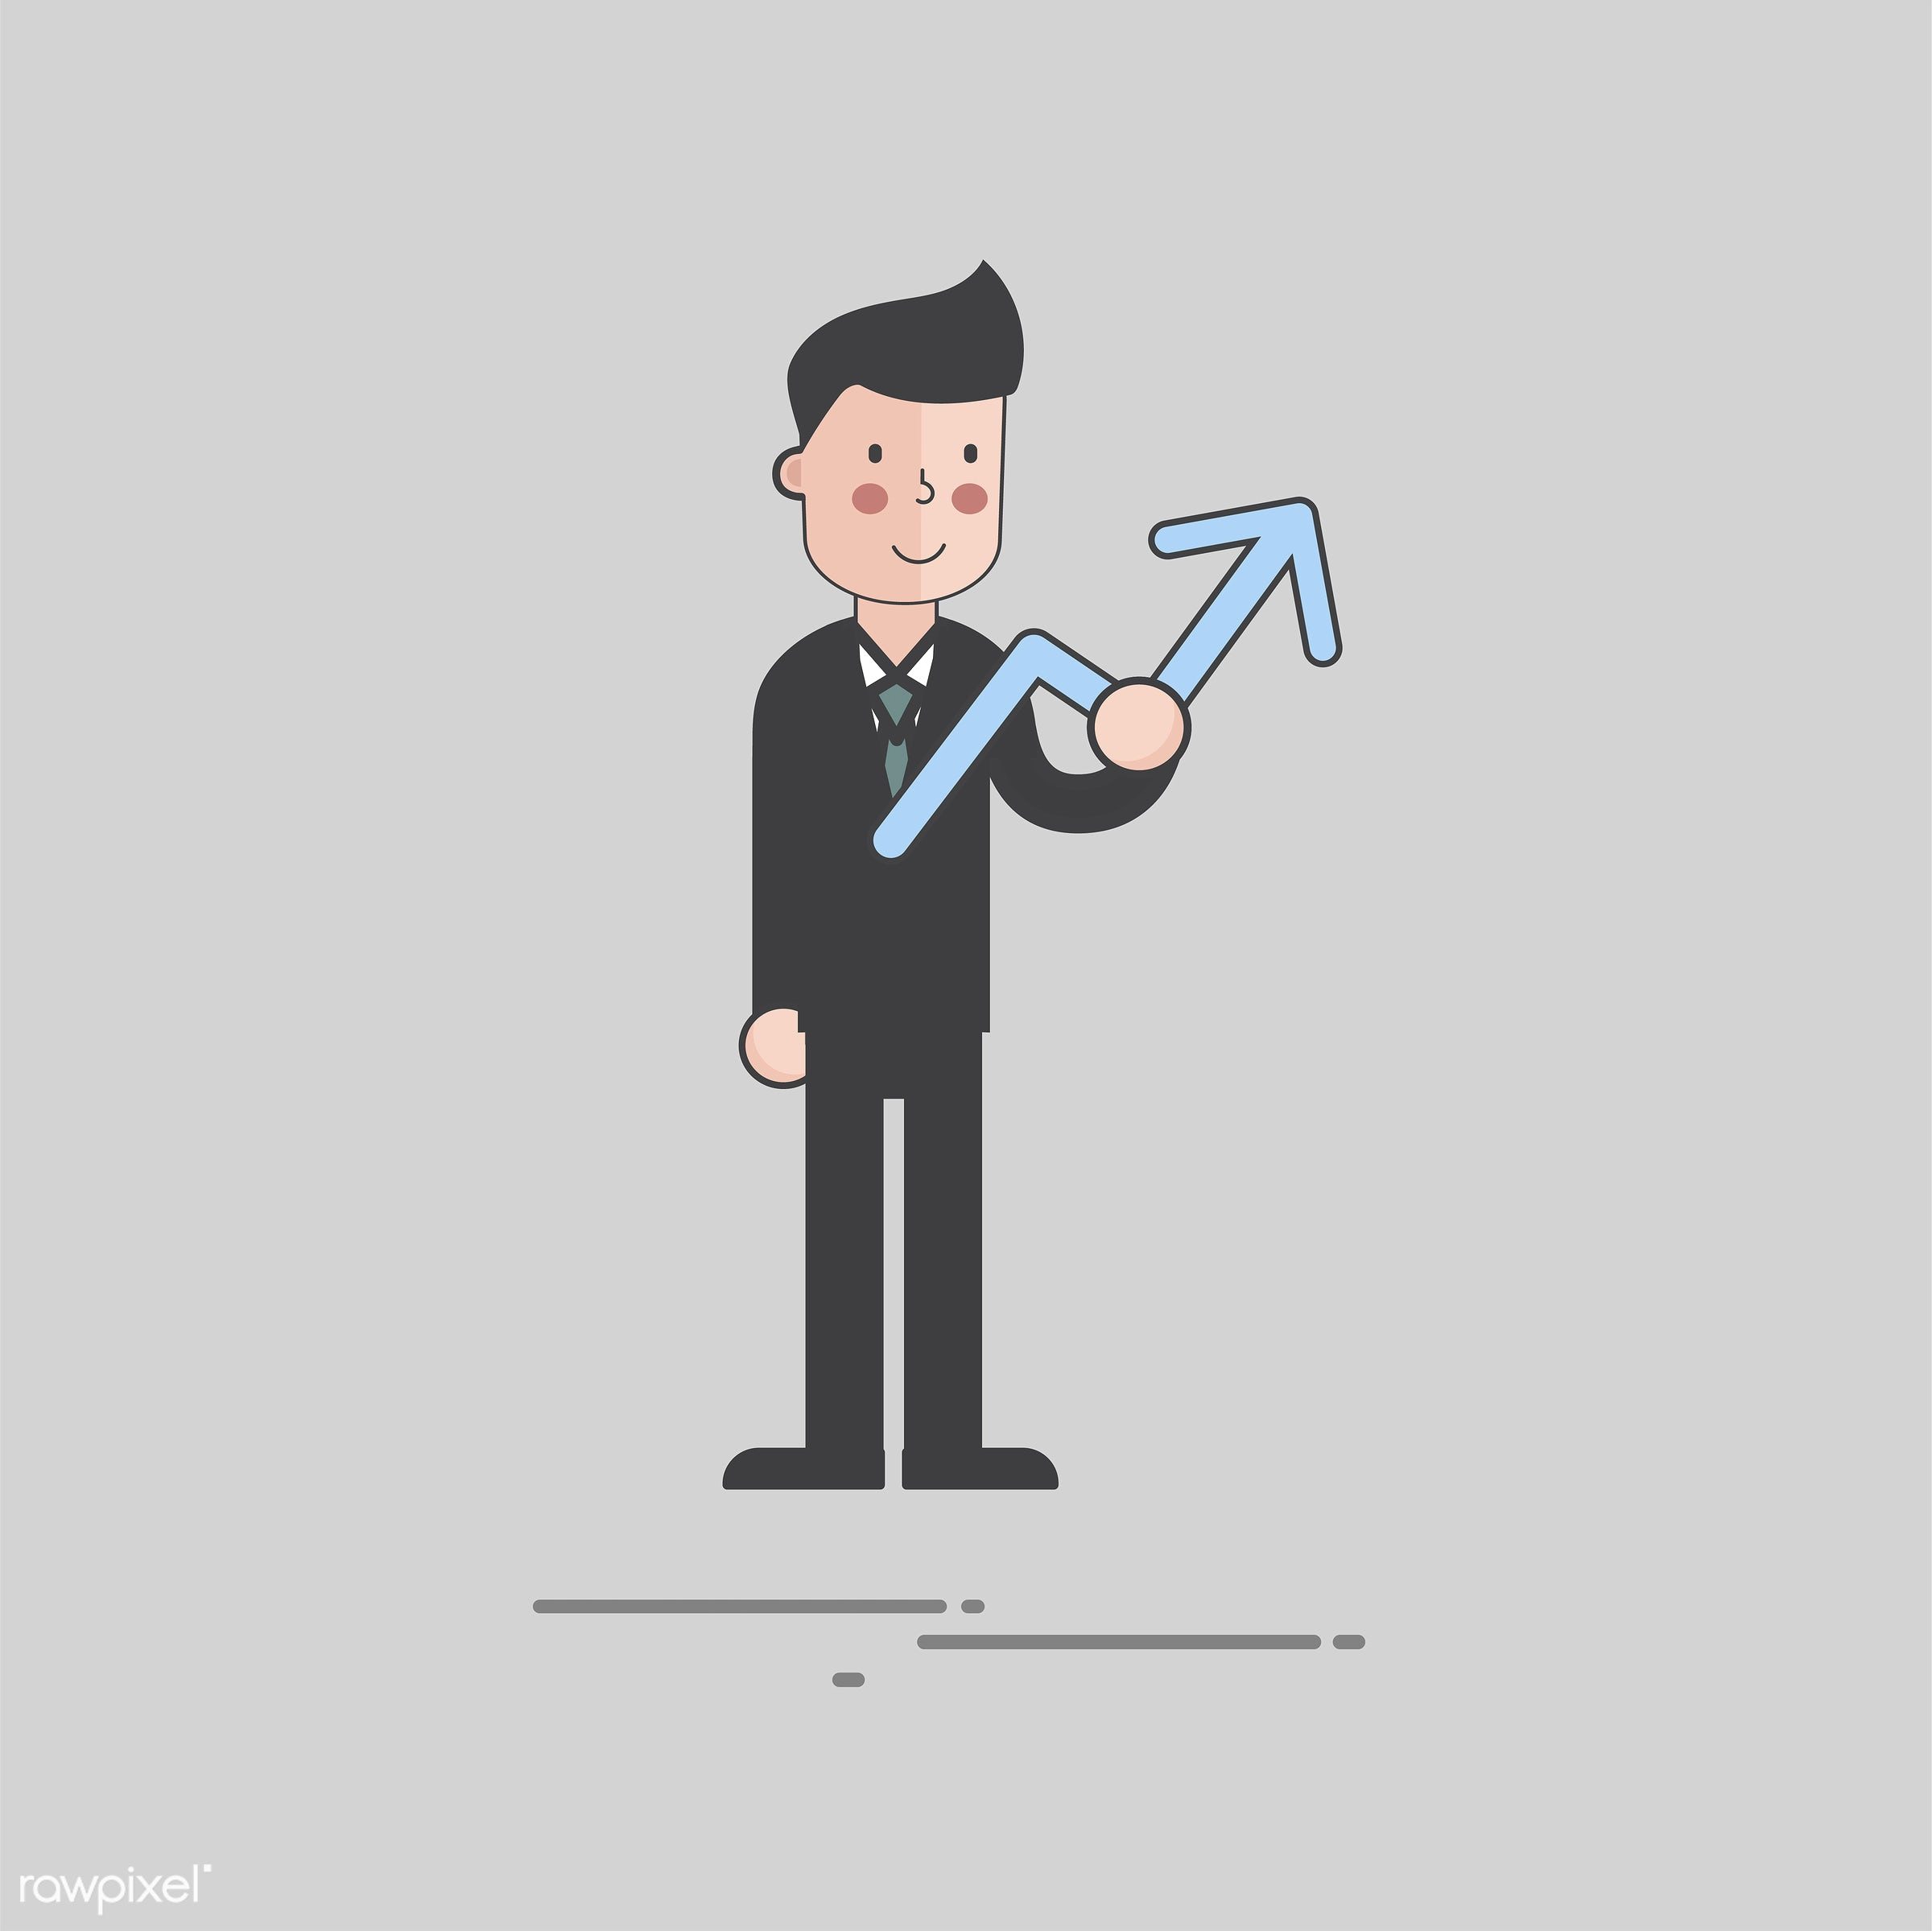 Illustration of people avatar - business, cartoon, character, drawing, flat, graphic, holding, icon, illustration, man, sign...